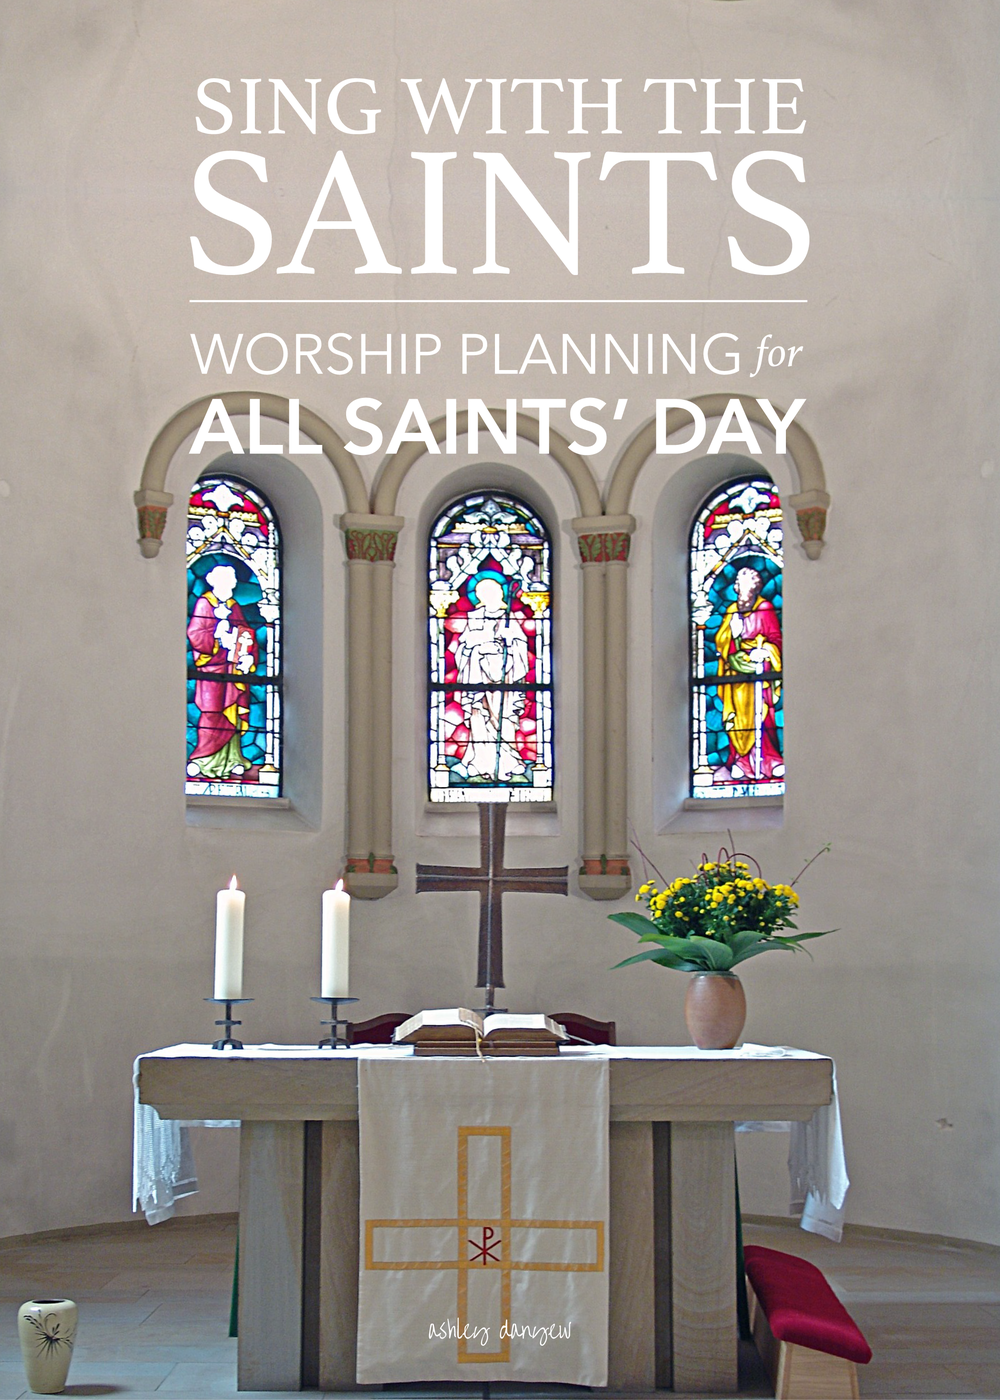 Copy of Sing with the Saints: Worship Planning for All Saints' Day